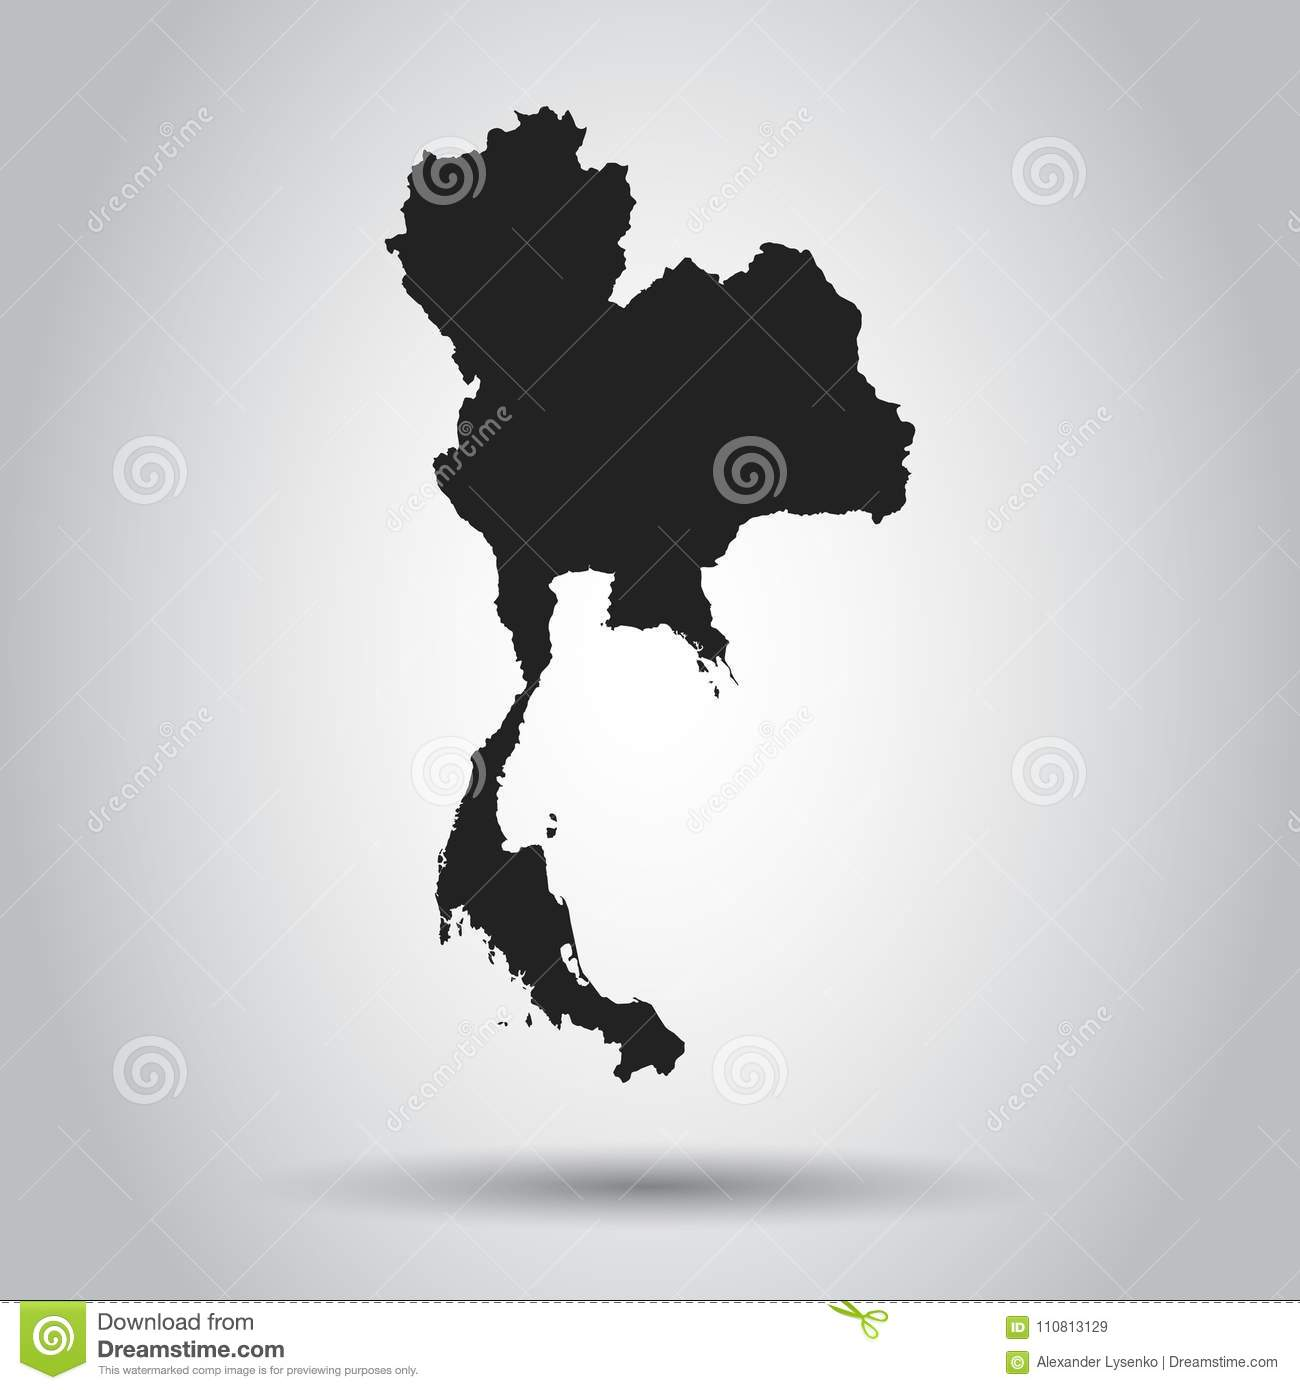 Thailand vector map black icon on white background stock vector download thailand vector map black icon on white background stock vector illustration of gumiabroncs Image collections